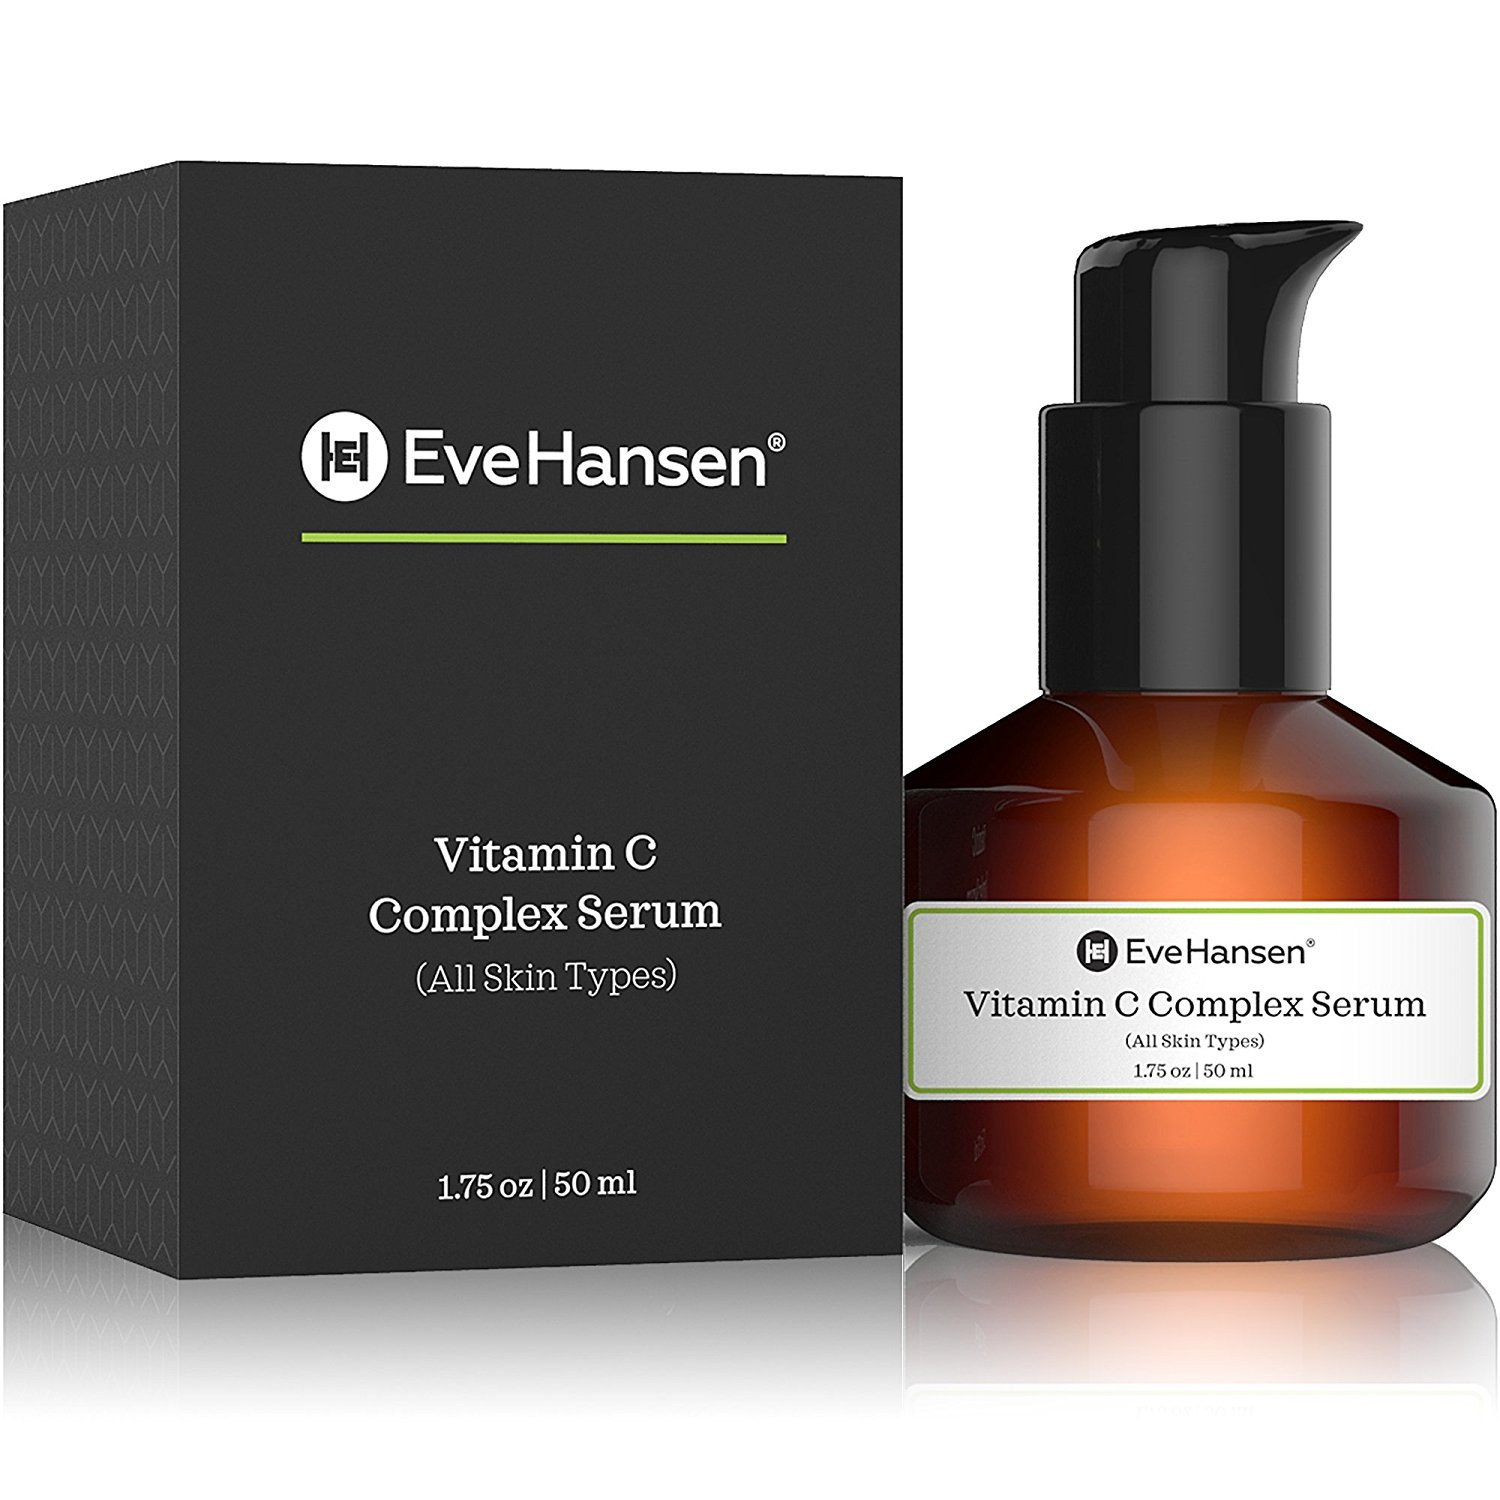 Vitamin C Serum with Vitamin E & Ferulic Acid by Eve Hansen - Natural and Pure Anti Aging Serum that Protects Against Sun Damage and Wrinkles. 2 Ounces.